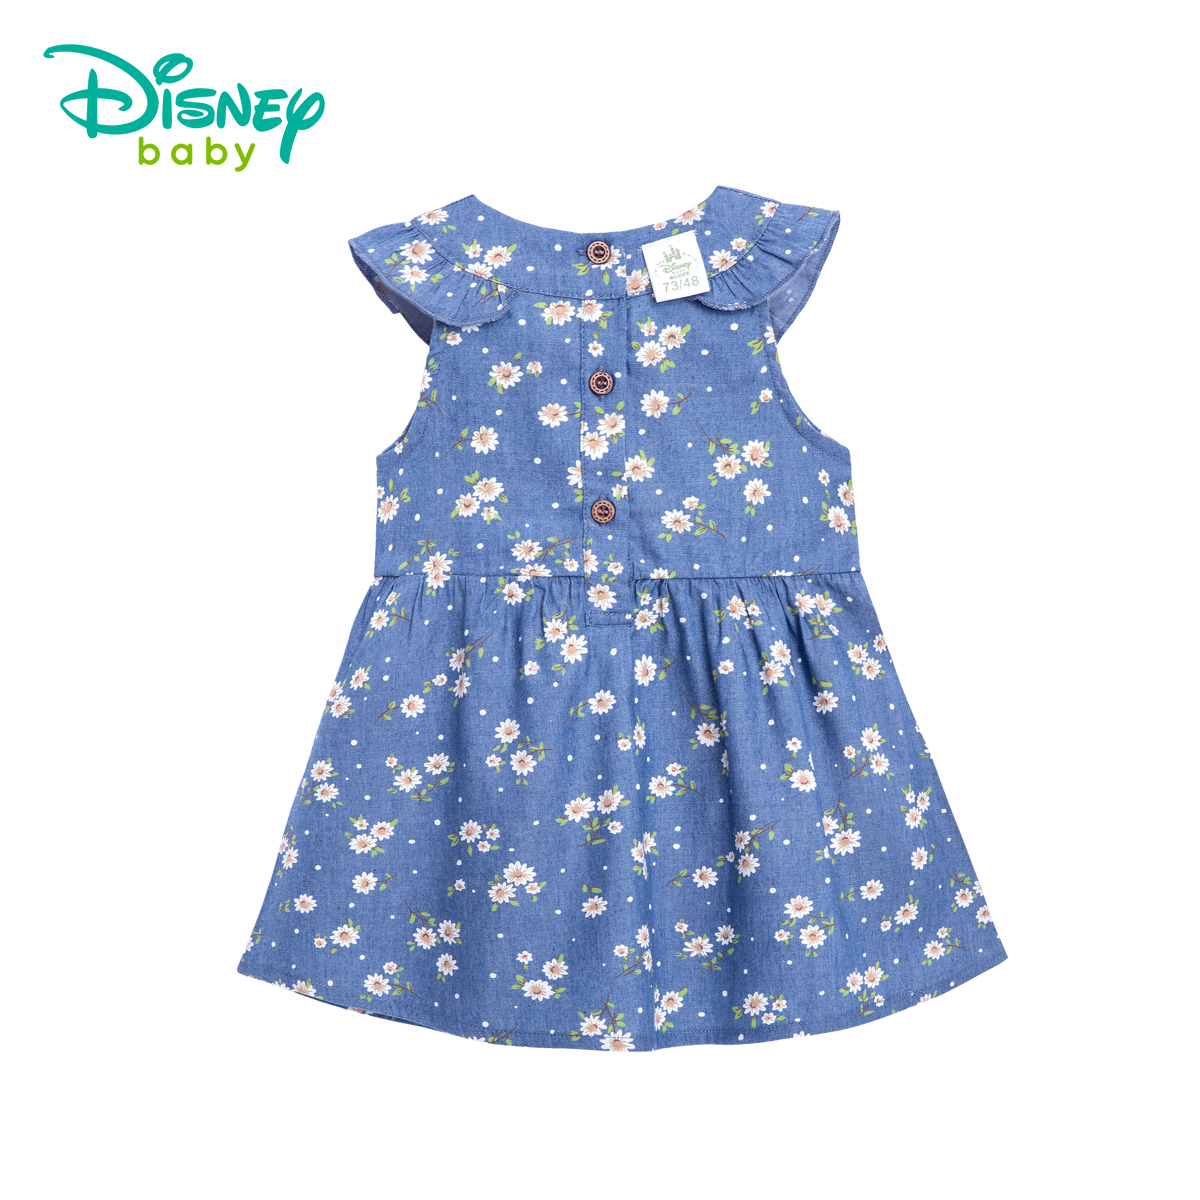 Disney 2018 New Cotton Girl Dress Kids Summer Children Clothes Princess Korean Cute Thin Cowboy Flounce Dress Size 66-120 ricom вешалка для одежды ricom 1925s ybui r wp